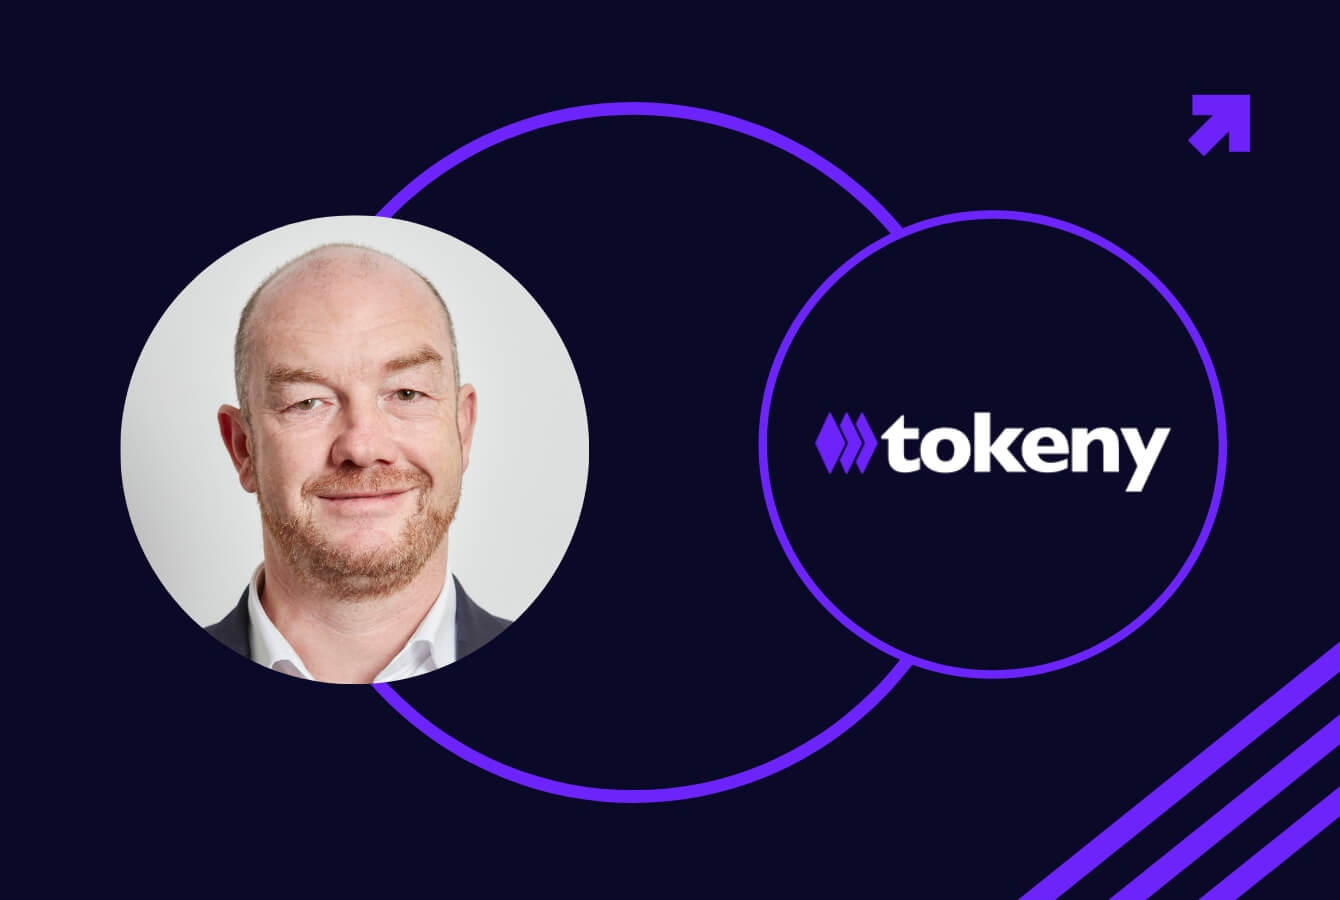 Fabrice Croiseaux Joins Tokeny as Member of the Board